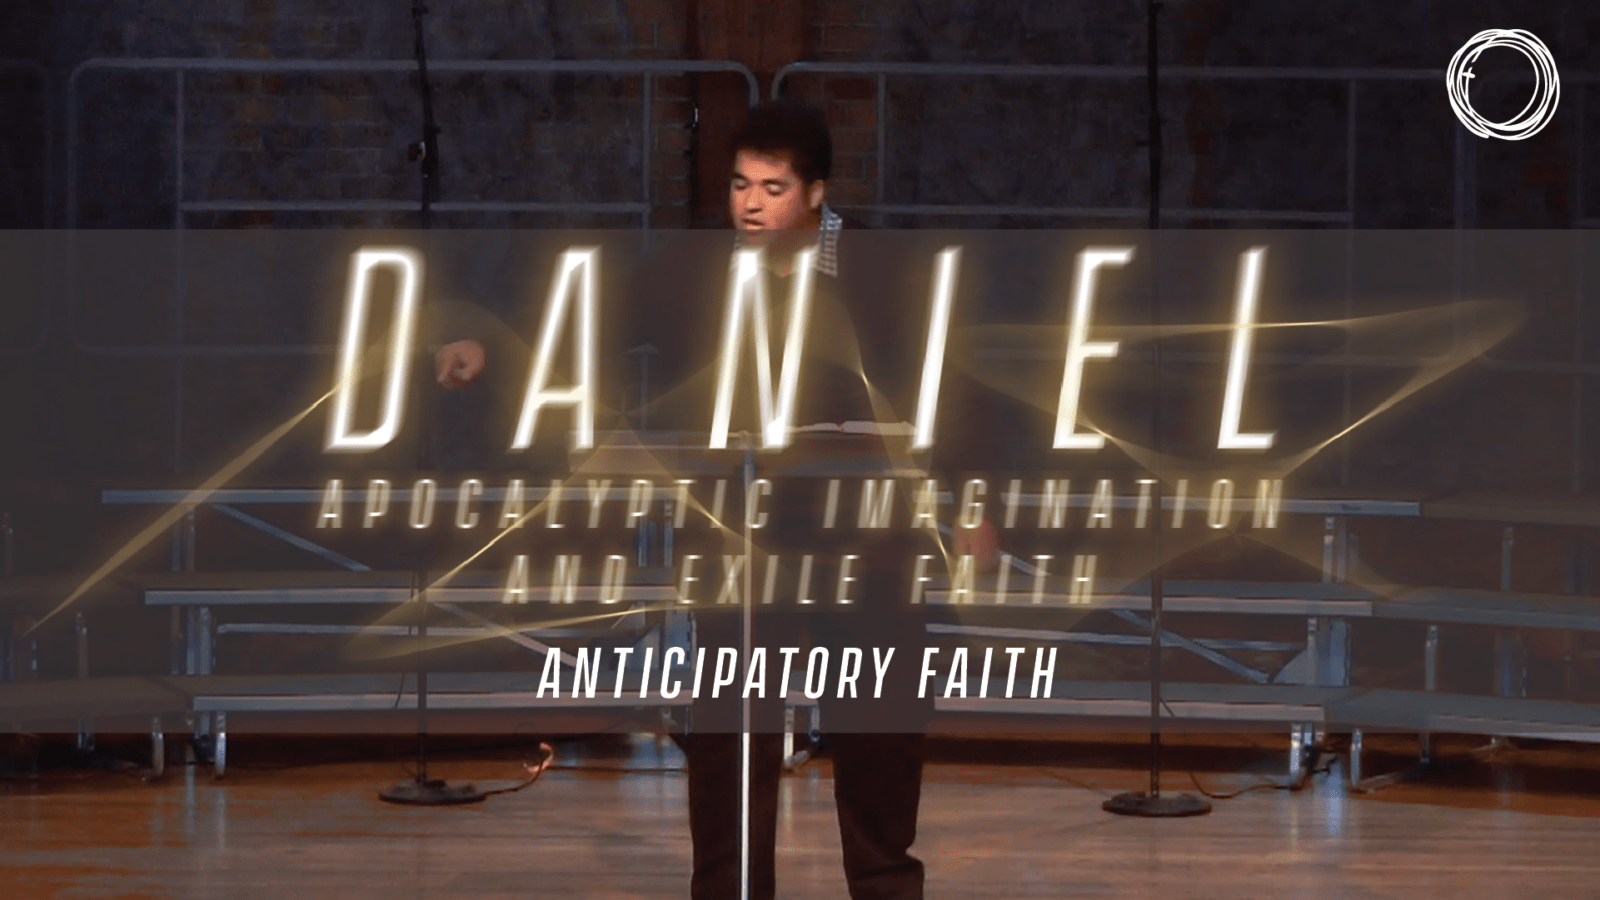 Anticipatory Faith